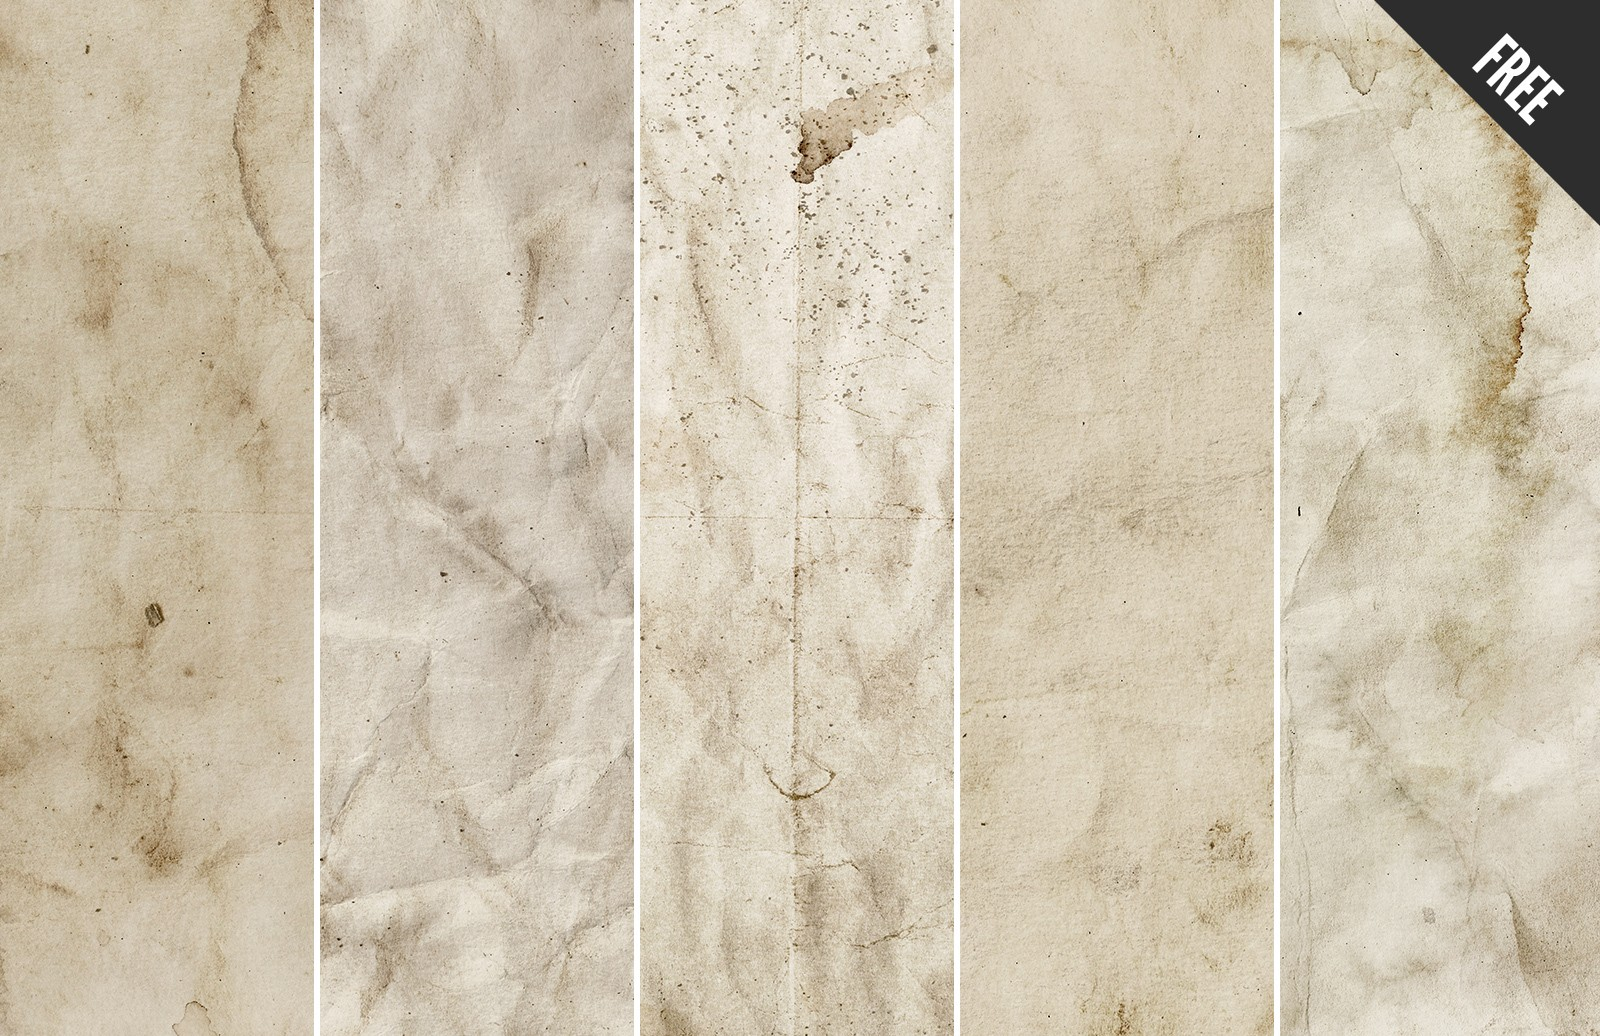 Large Grunge  Stained  Paper  Textures  Preview 3